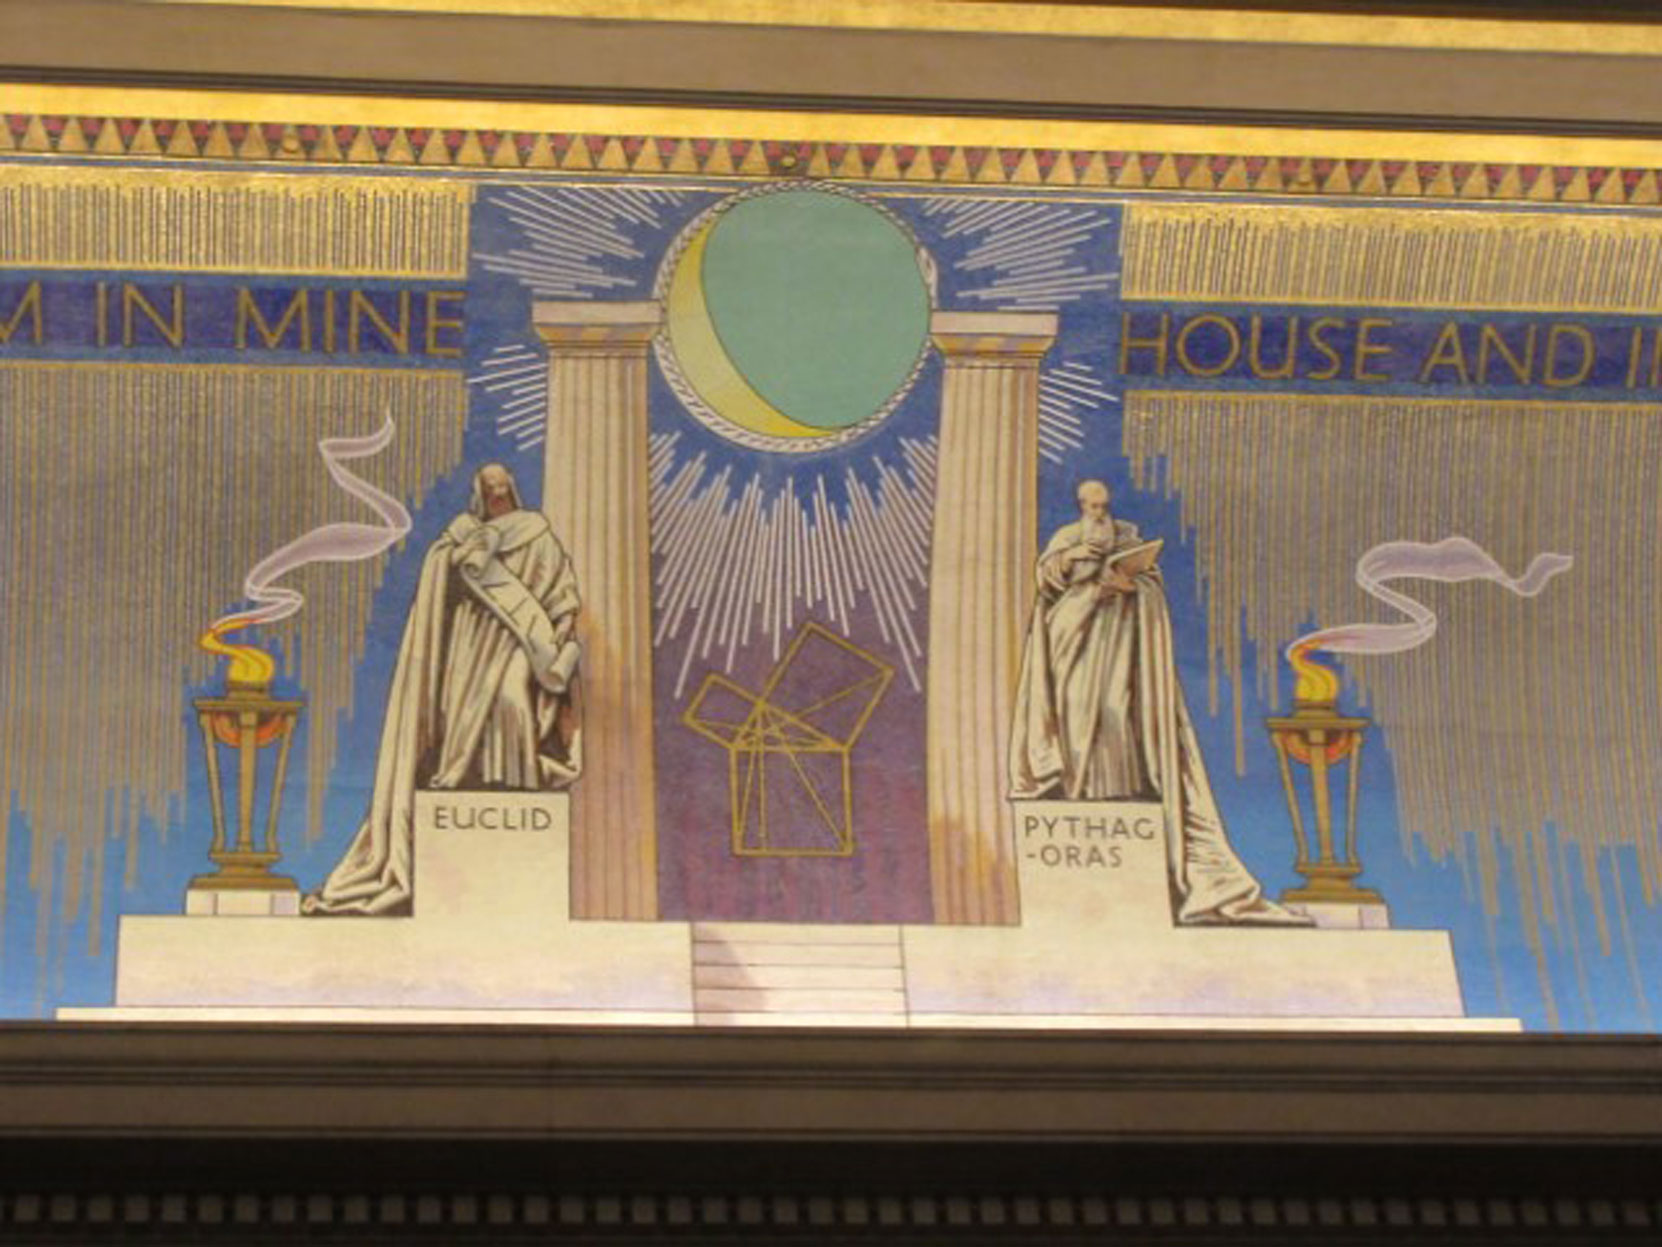 West Ceiling, Freemasons Hall, London, UK, July 2018 (photo by Paul Philcox)